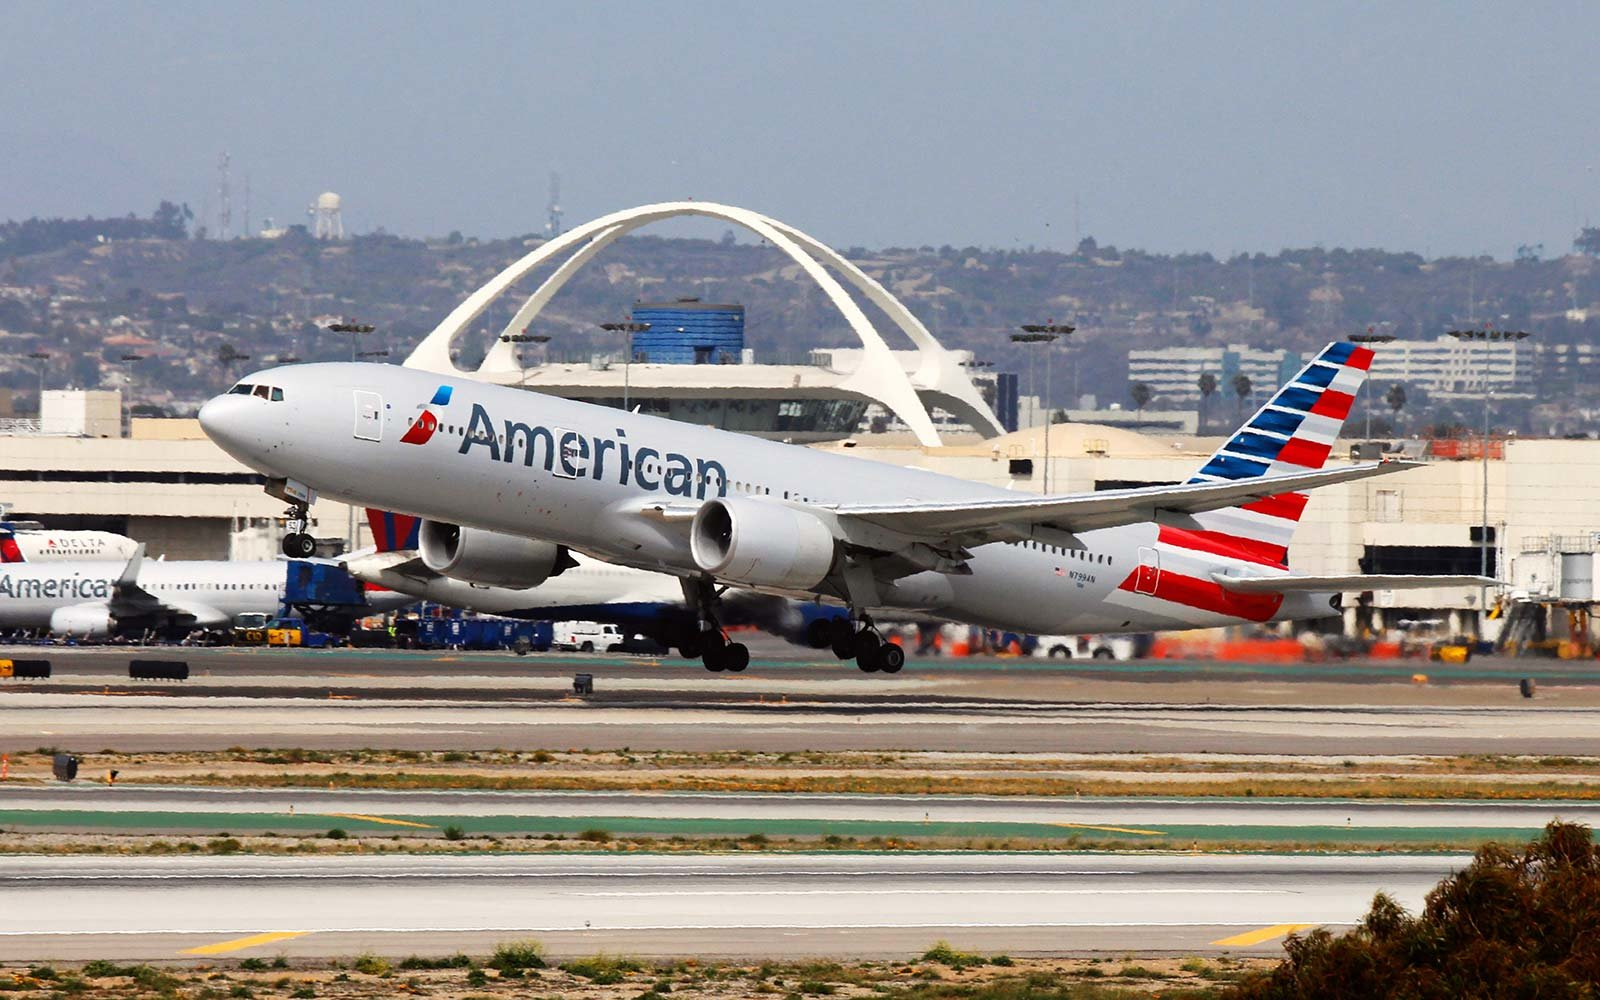 american airlines boeing 777 airplane airport